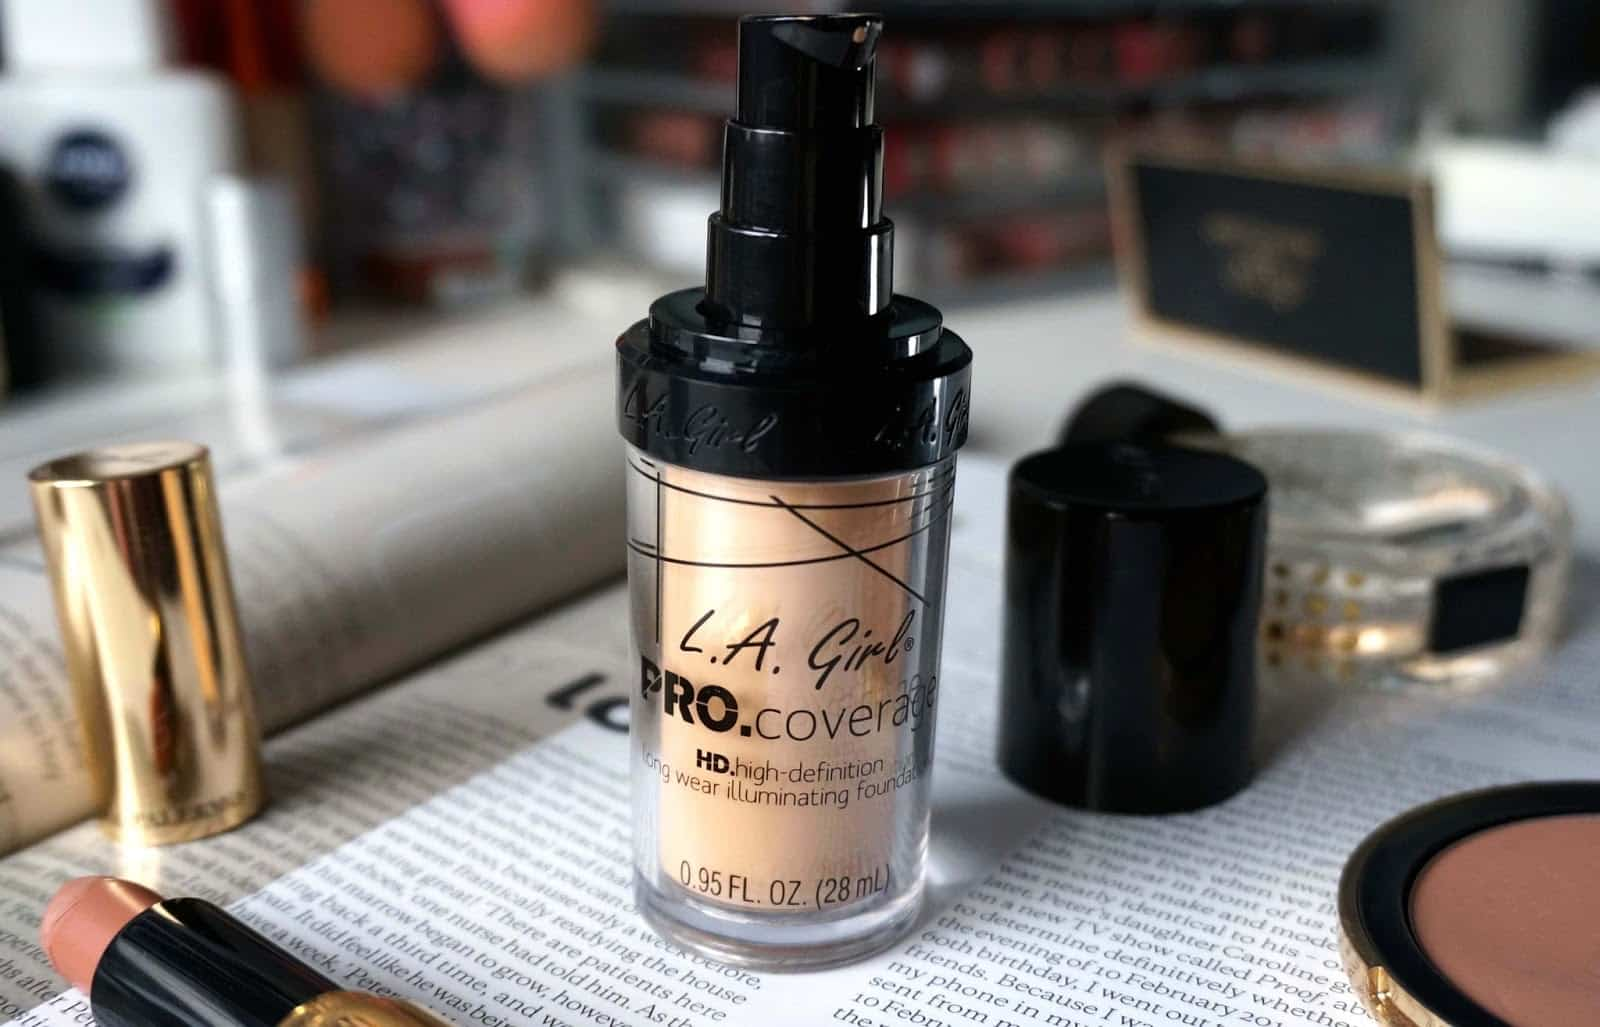 L.A-Girl-Pro-Coverage-Illuminating-Foundation